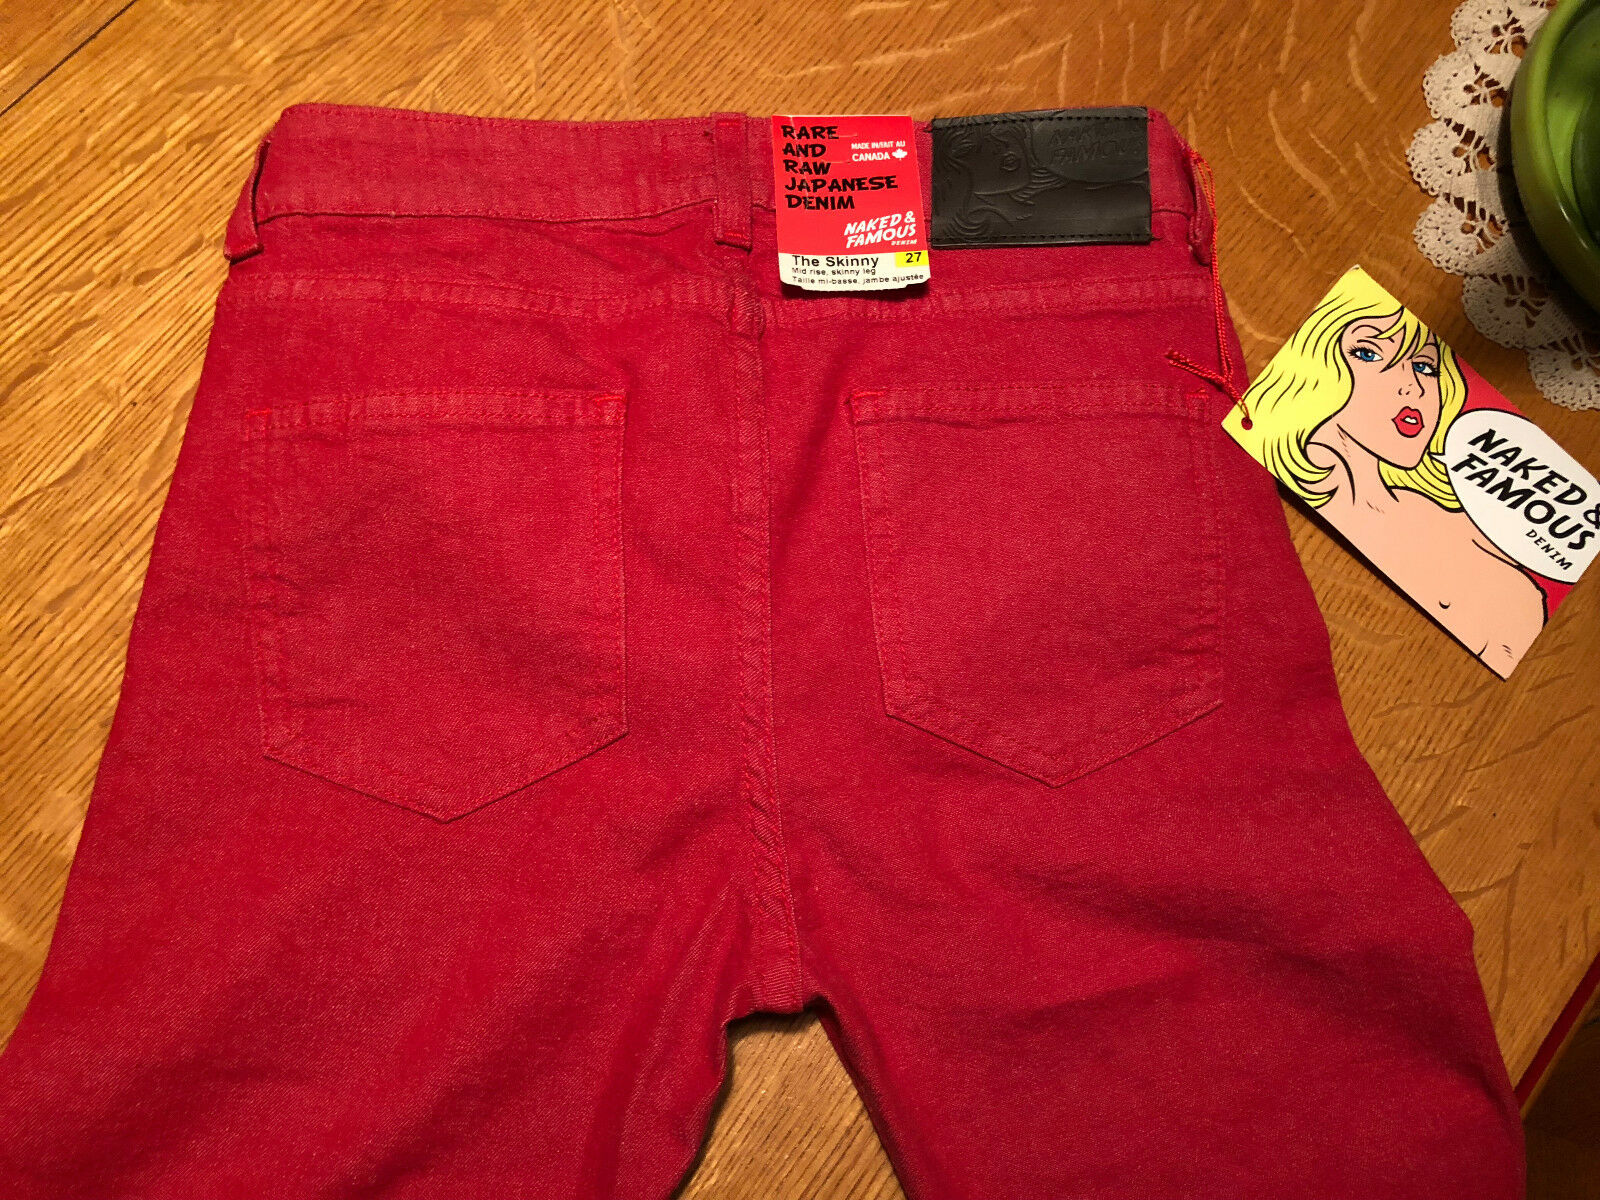 NAKED & FAMOUS THE SKINNY RED STRETCH JEANS 27 X 32 NWT VERY NICE